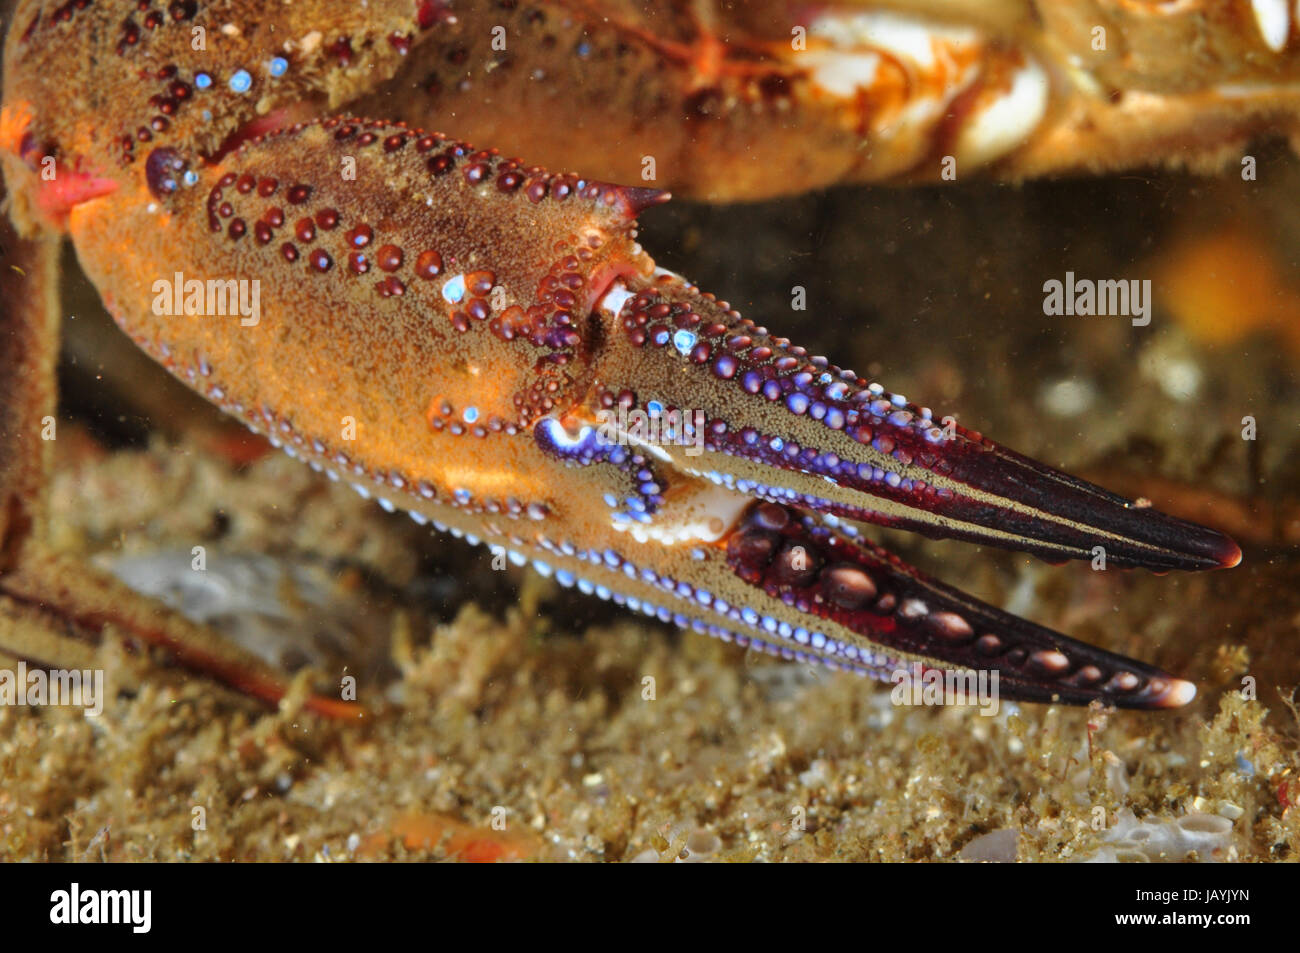 Claw of a velvet crab showing beautiful colors - Stock Image